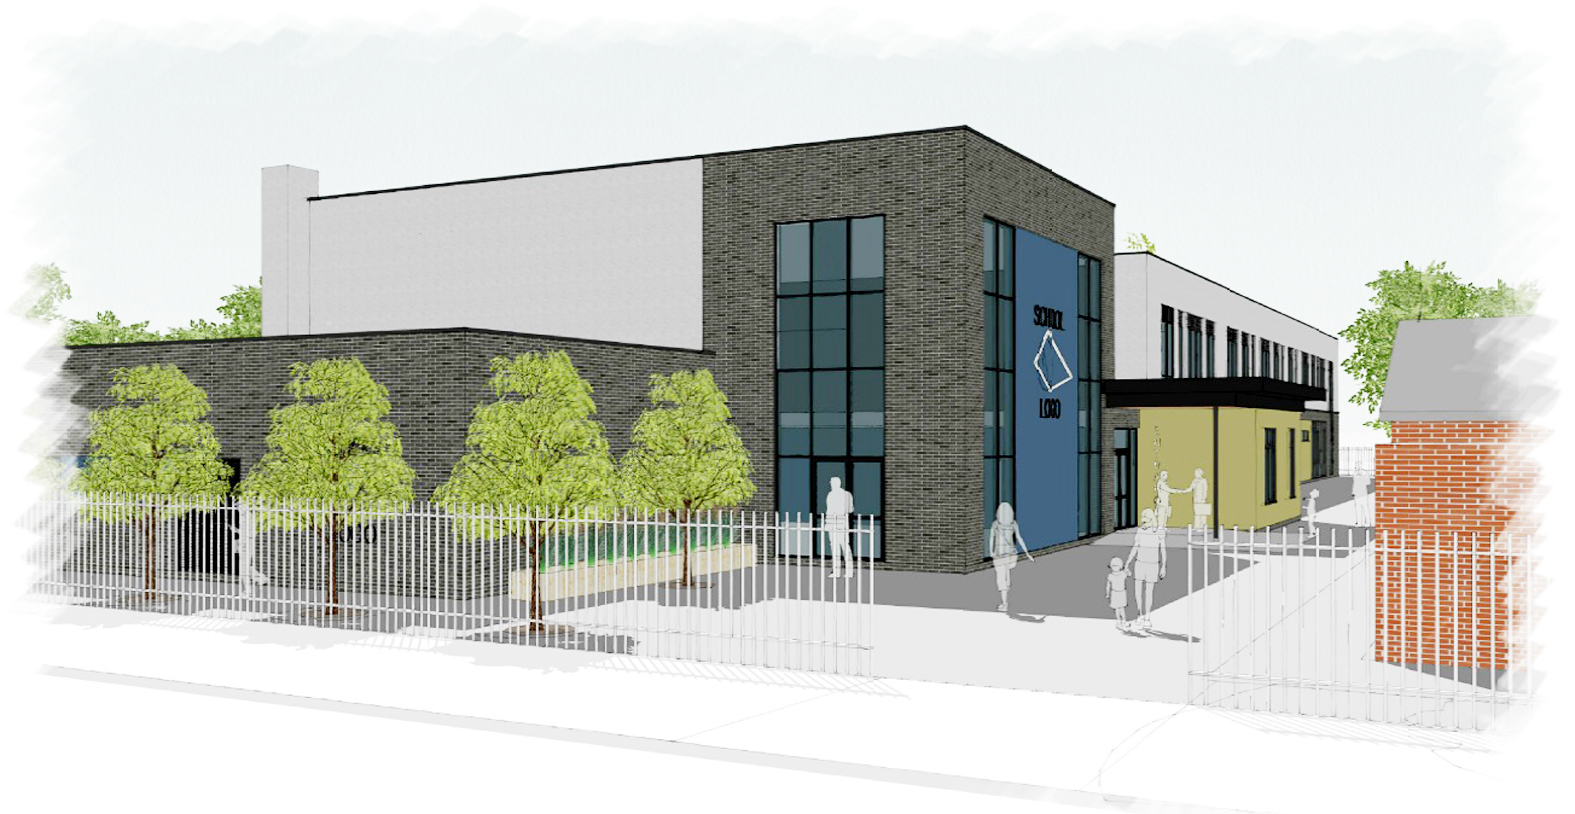 Designs for a new free primary school in Great Lever